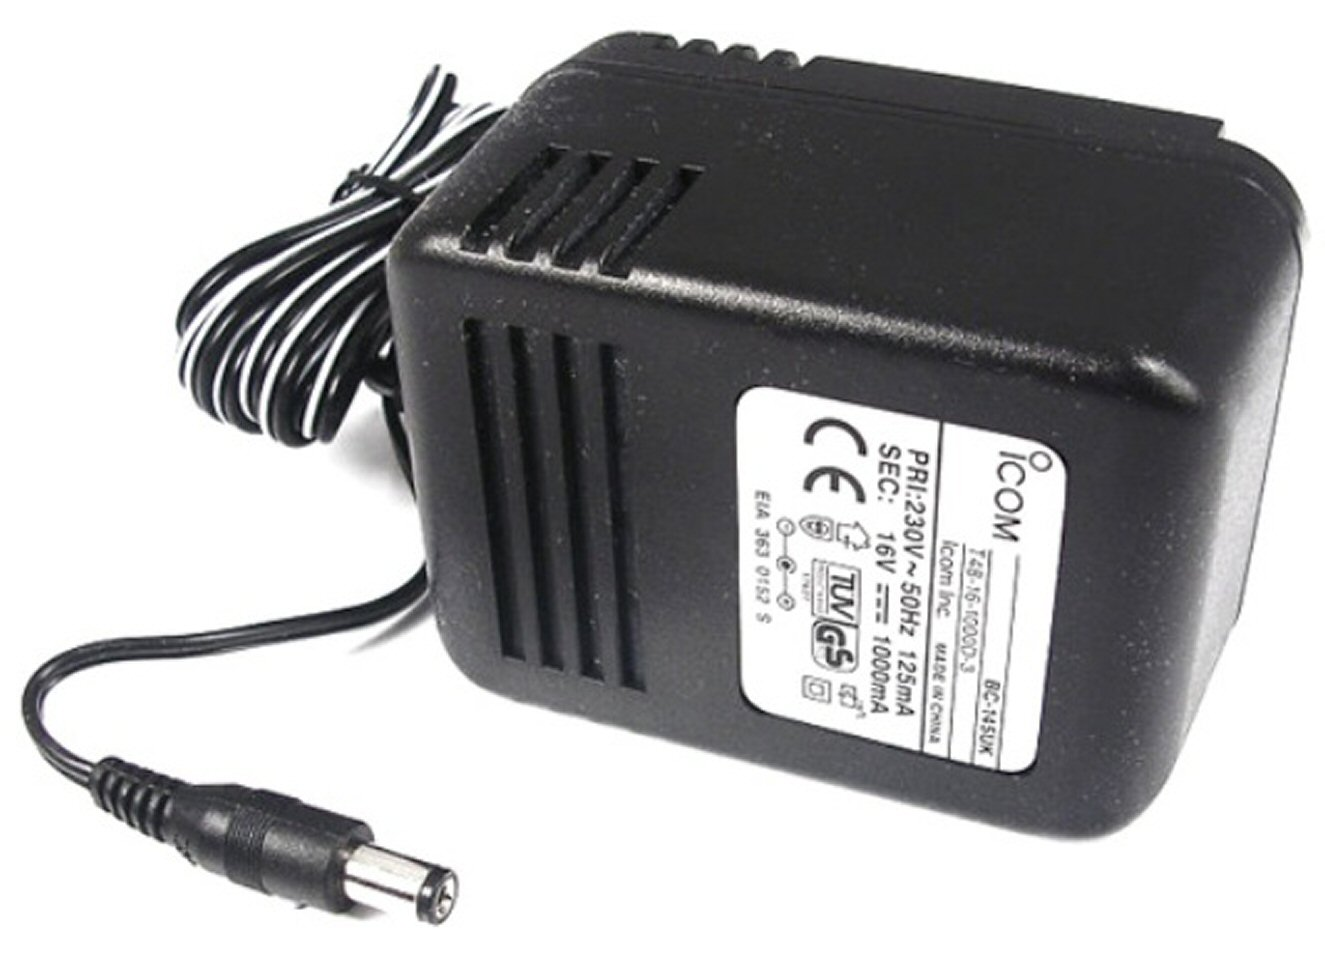 Icom BC-145 Mains Adapter for BC-119N, BC-144 and IC-M35